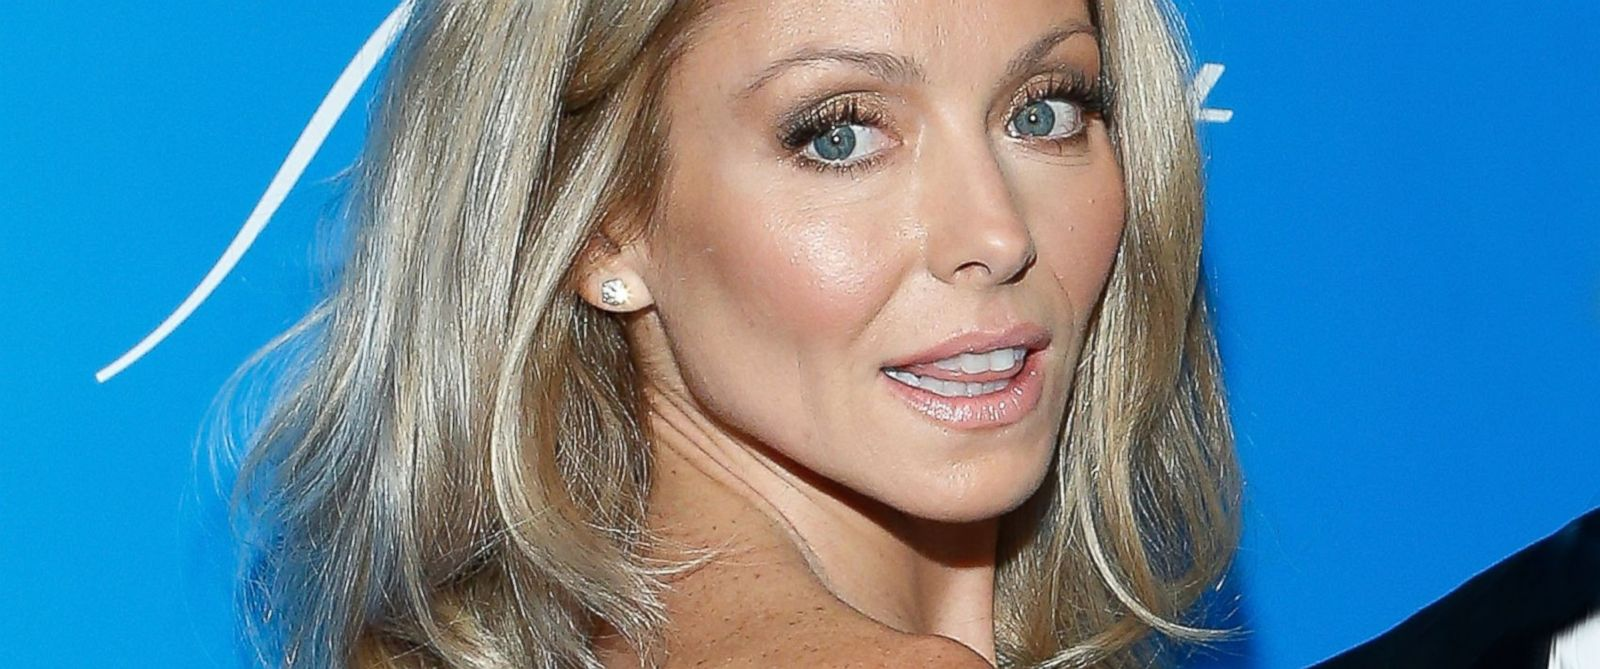 PHOTO: Kelly Ripa attends sUNICEF Snowflake Ball 2012 at Cipriani 42nd Street on November 27, 2012 in New York City.